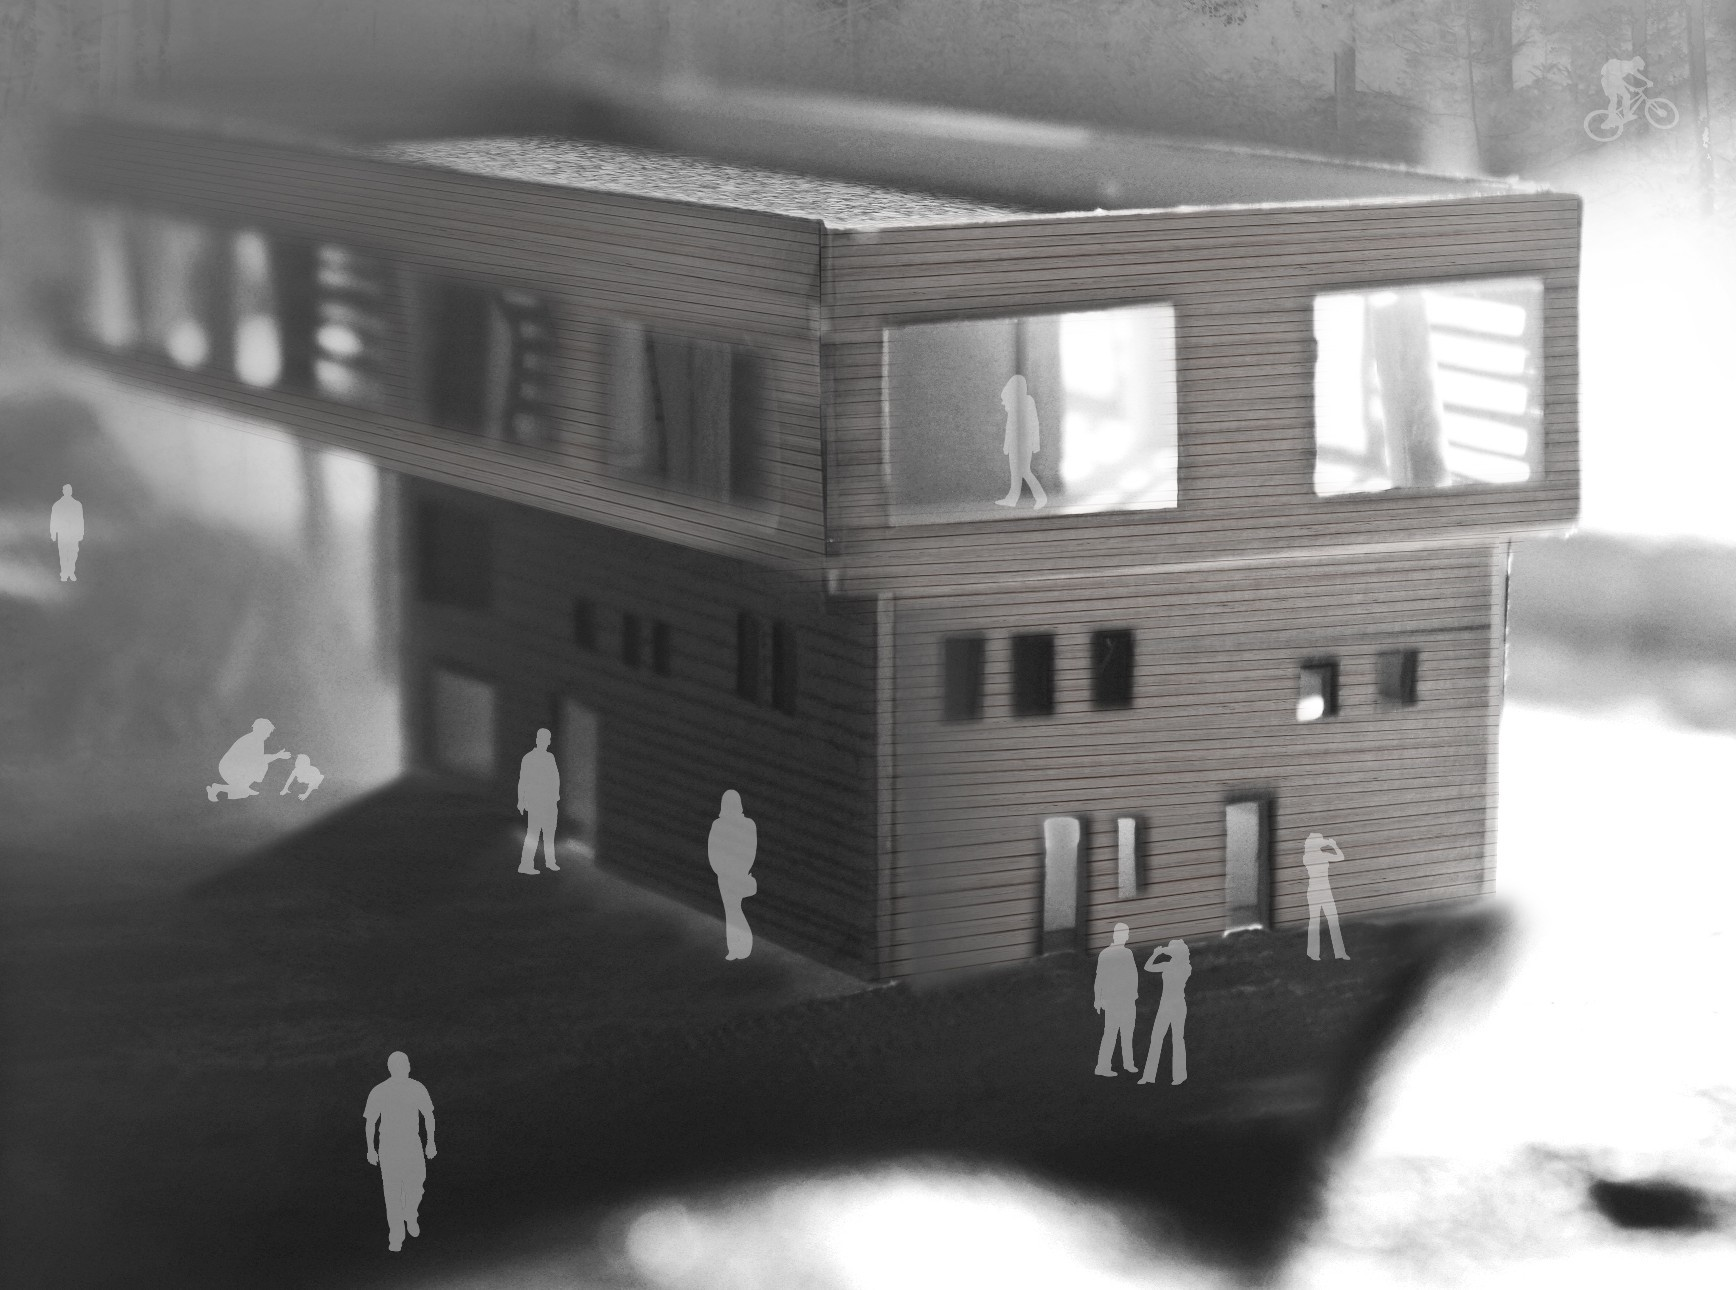 Second year student Johanna Kleesattel's design for a potential trail centre